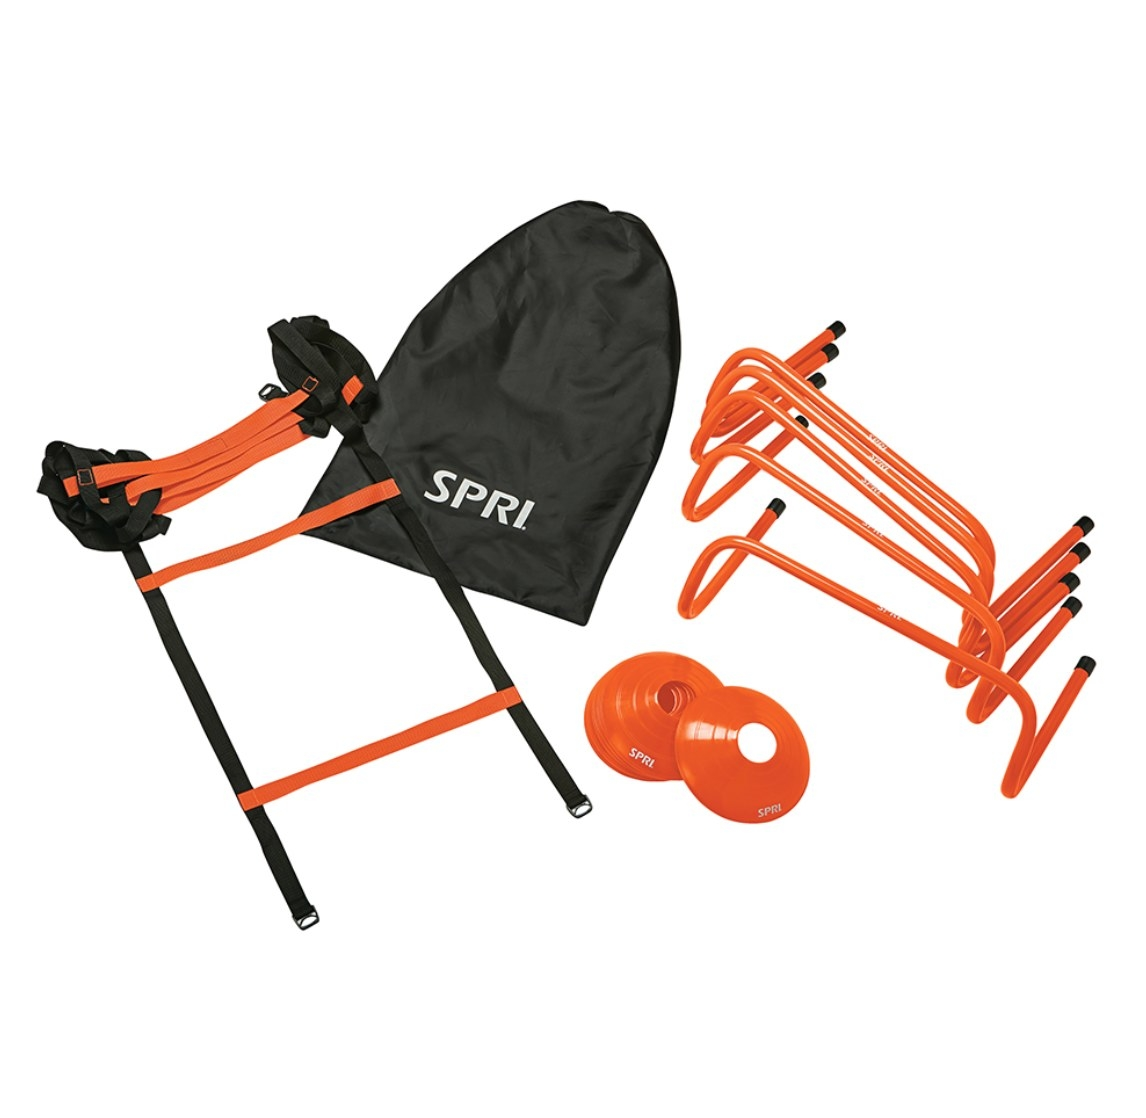 The sports training aid